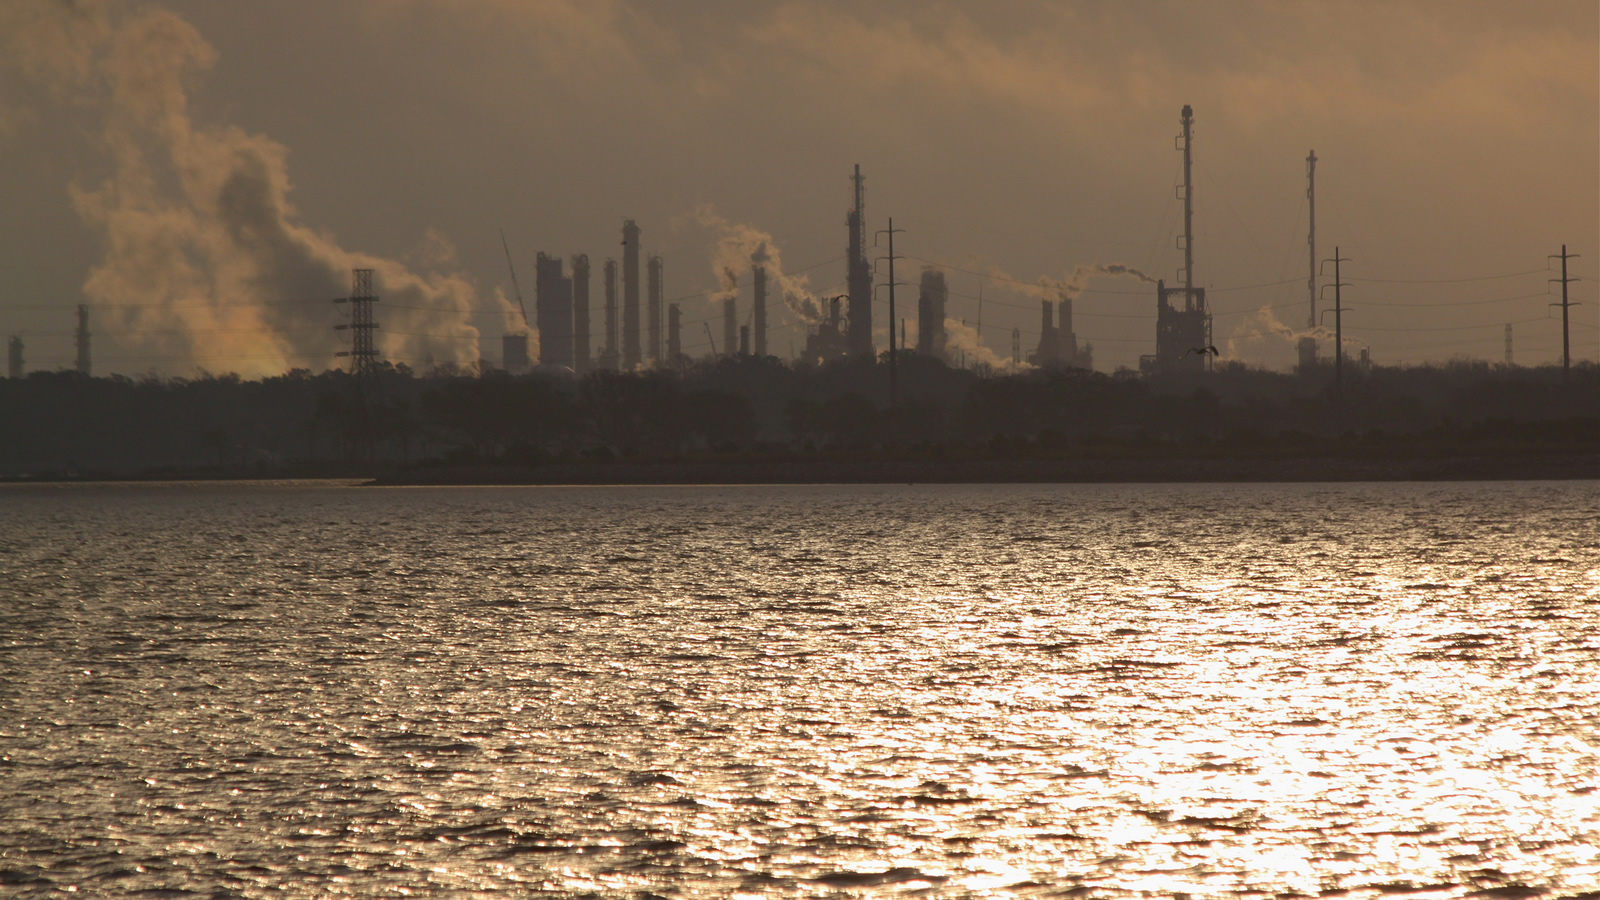 <h4>v. EXXONMOBIL</h4><h5>After our sister group Environment Texas filed suit, a federal judge ordered Exxon to pay a $14.25 million fine for committing 16,386 days of violation of the Clean Air Act at the company's Baytown, Texas, refinery and chemical plant complex.</h5><em>Roy Luck via Flickr, CC-BY-2.0</em>